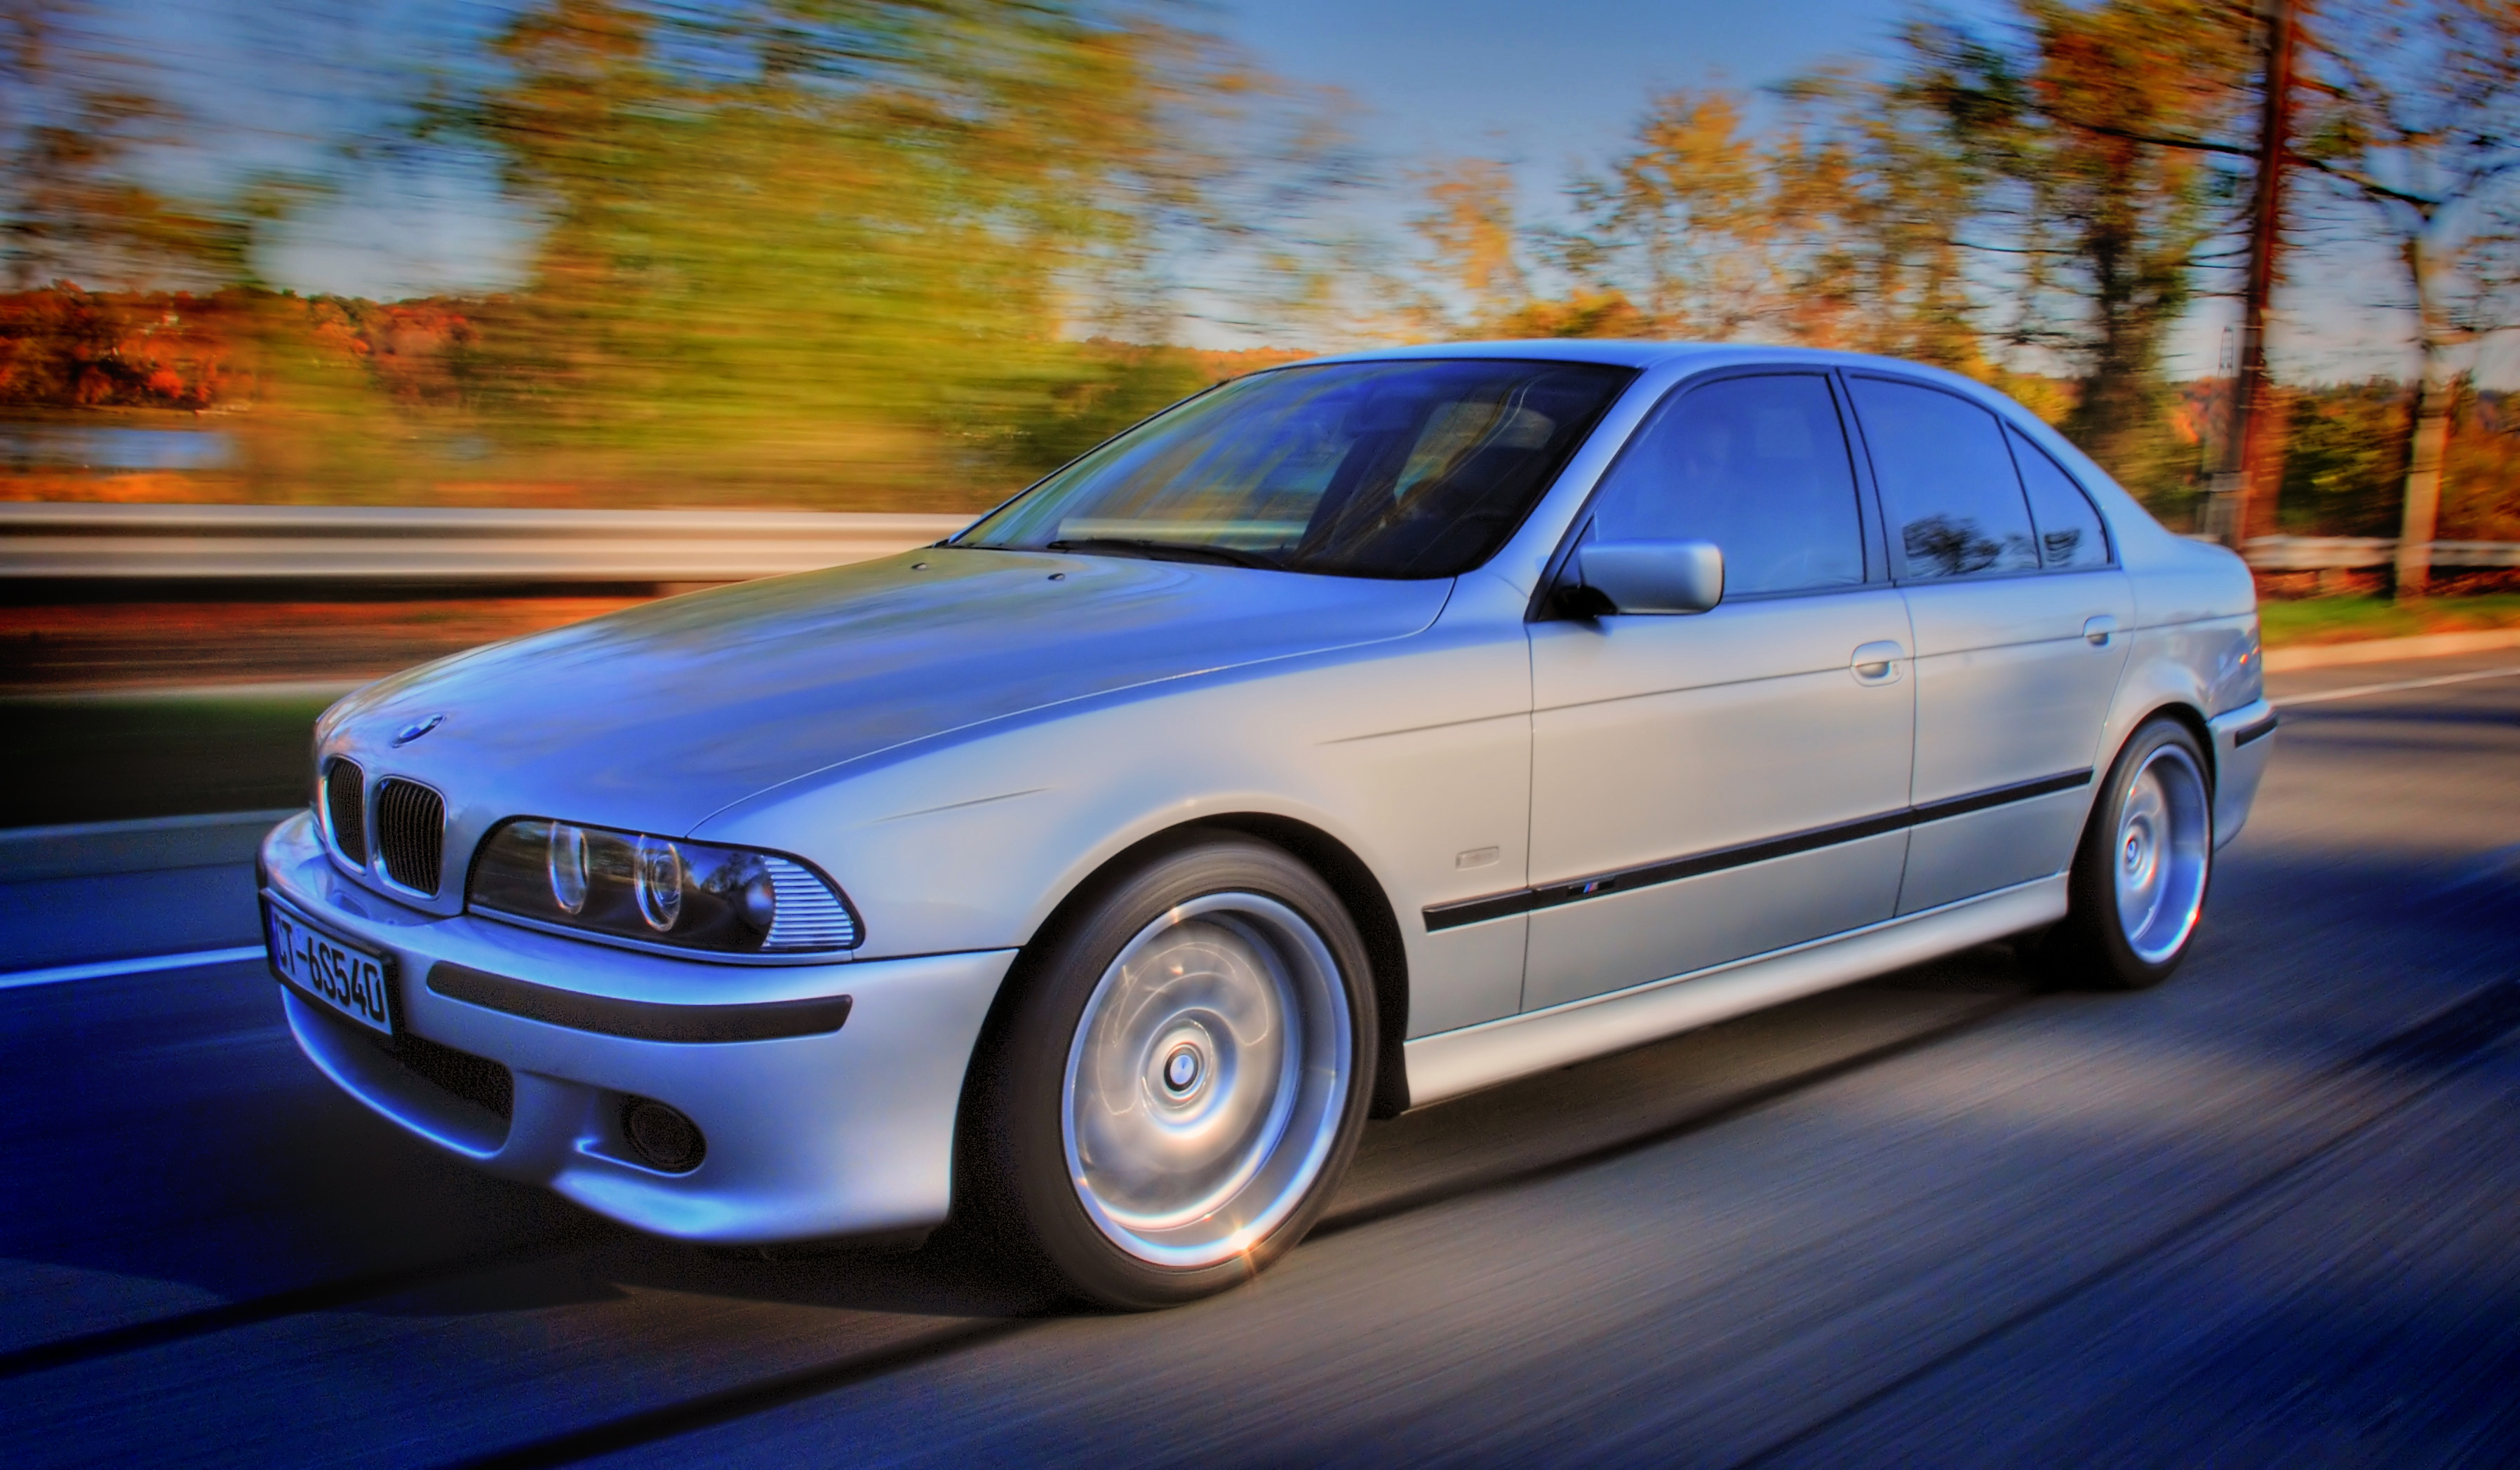 E39 M5 Wallpaper Thread - Page 3 - BMW M5 Forum and M6 Forums